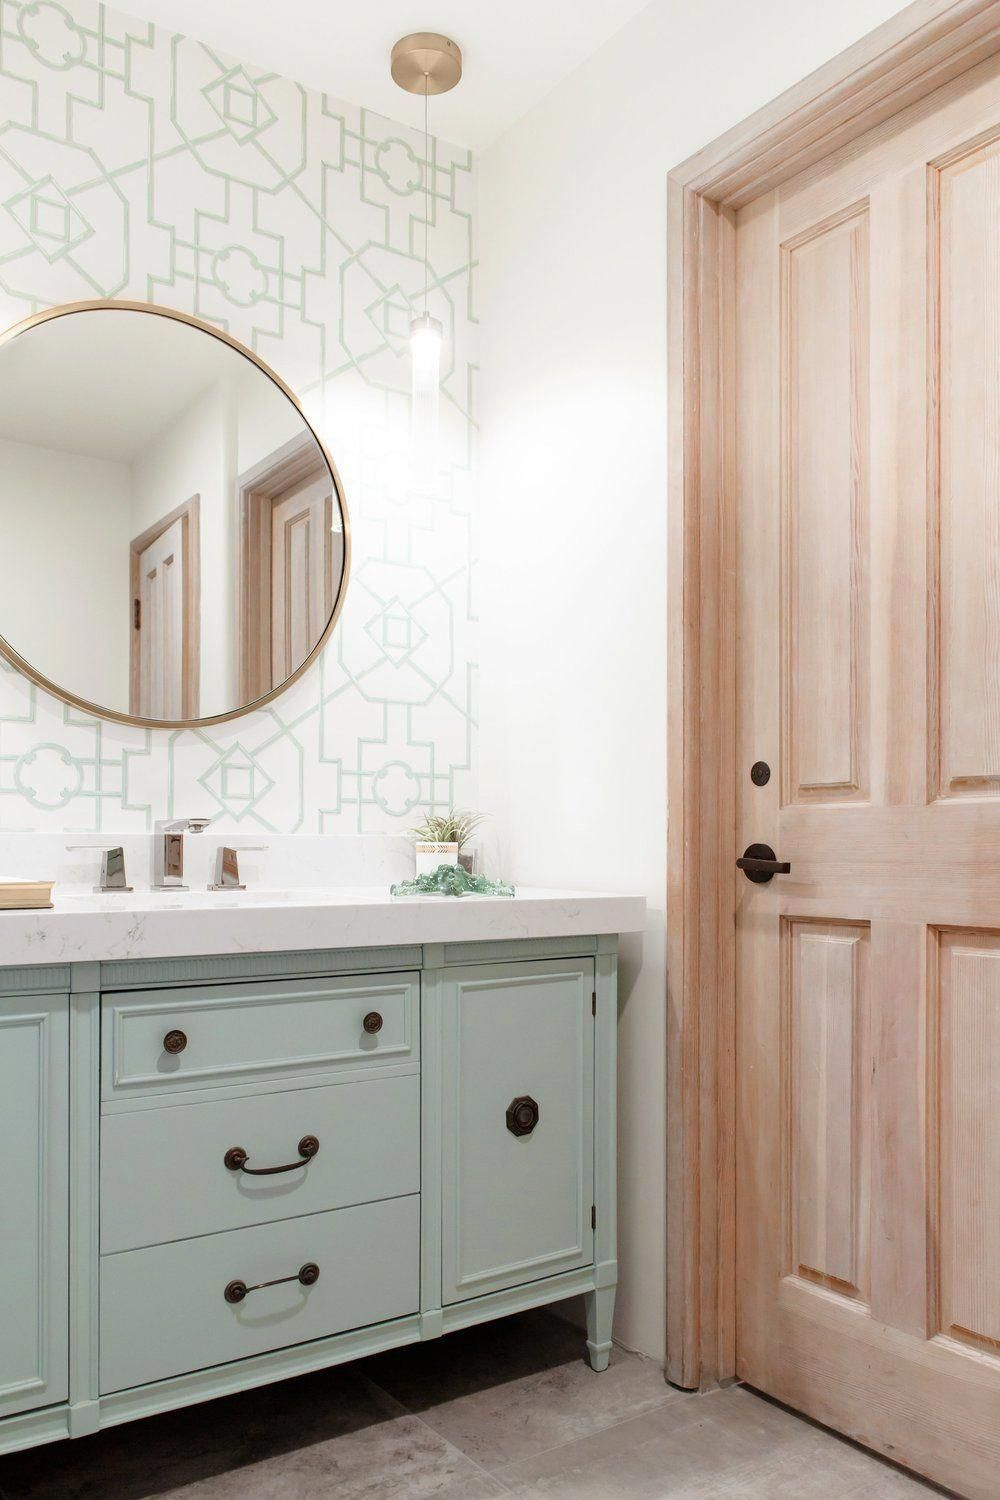 Mint green pattern wallpaper, oversized circle mirror and